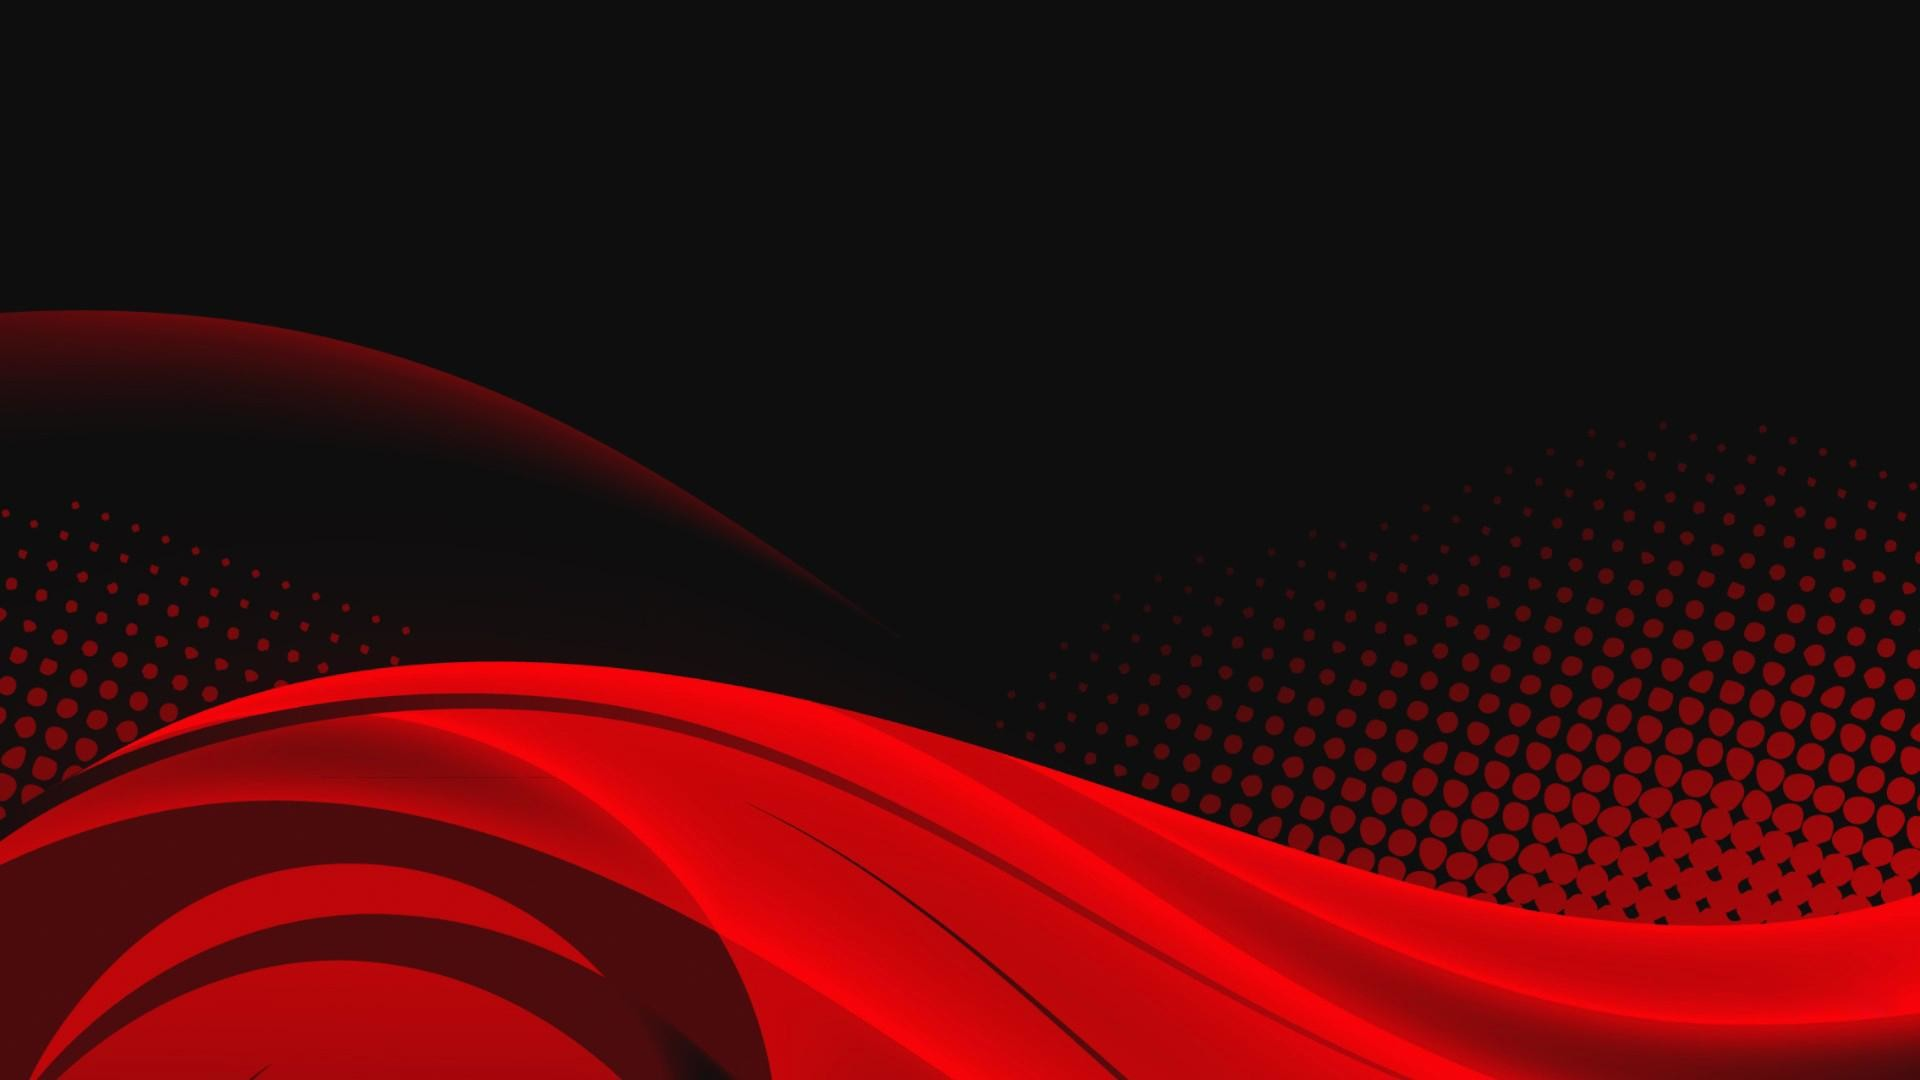 3d shapes wallpaper wallpapersafari; free hd black and red wallpapers page  2 of 3 wallpaper wiki …